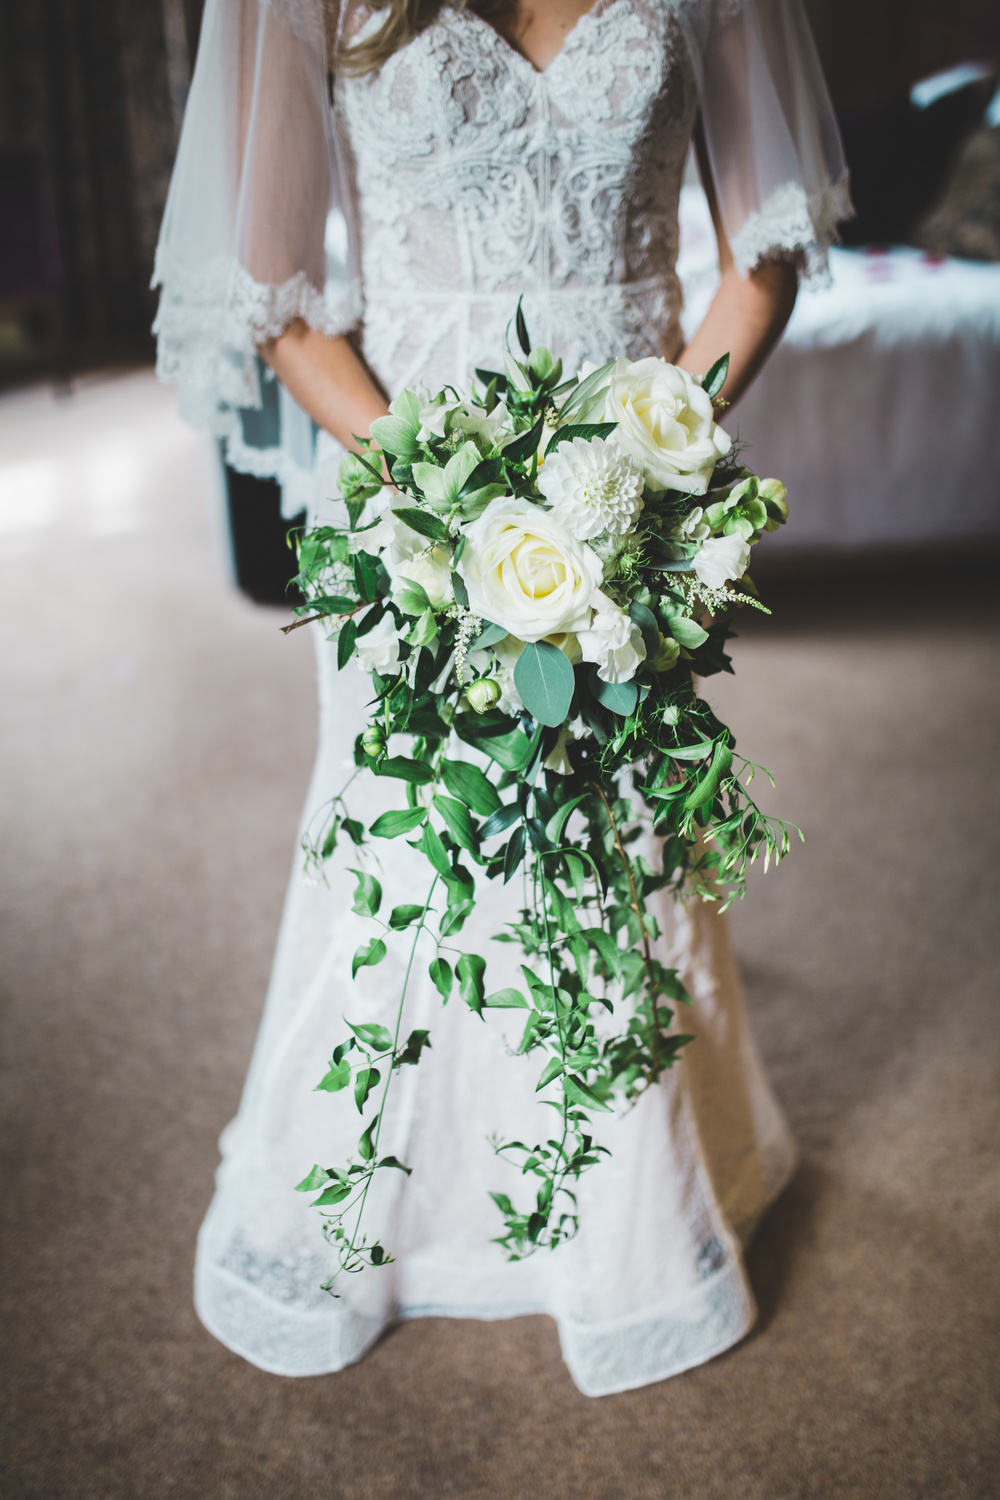 The bride and her bouquet.- Cheshire wedding photographer.